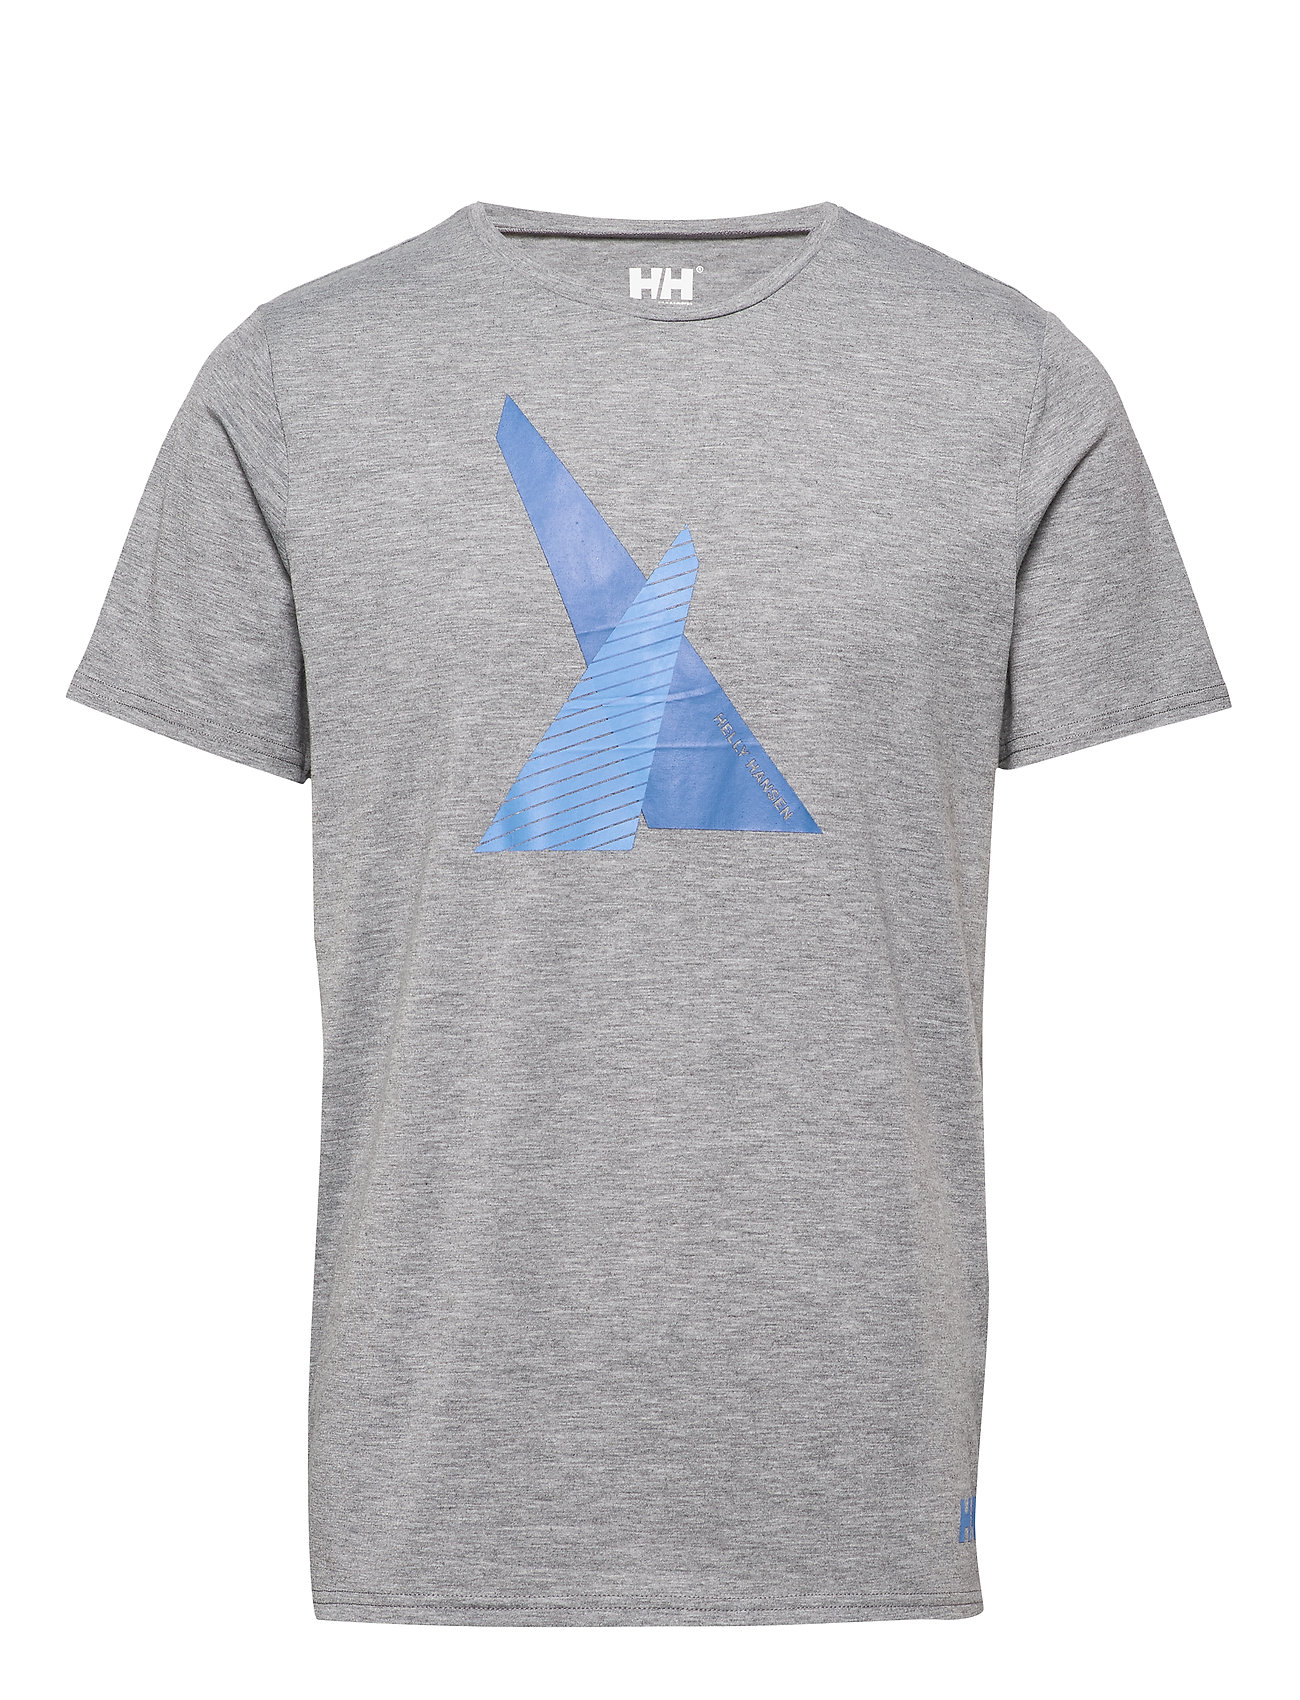 Helly Hansen HP SHORE T-SHIRT - 951 GREY MELANGE